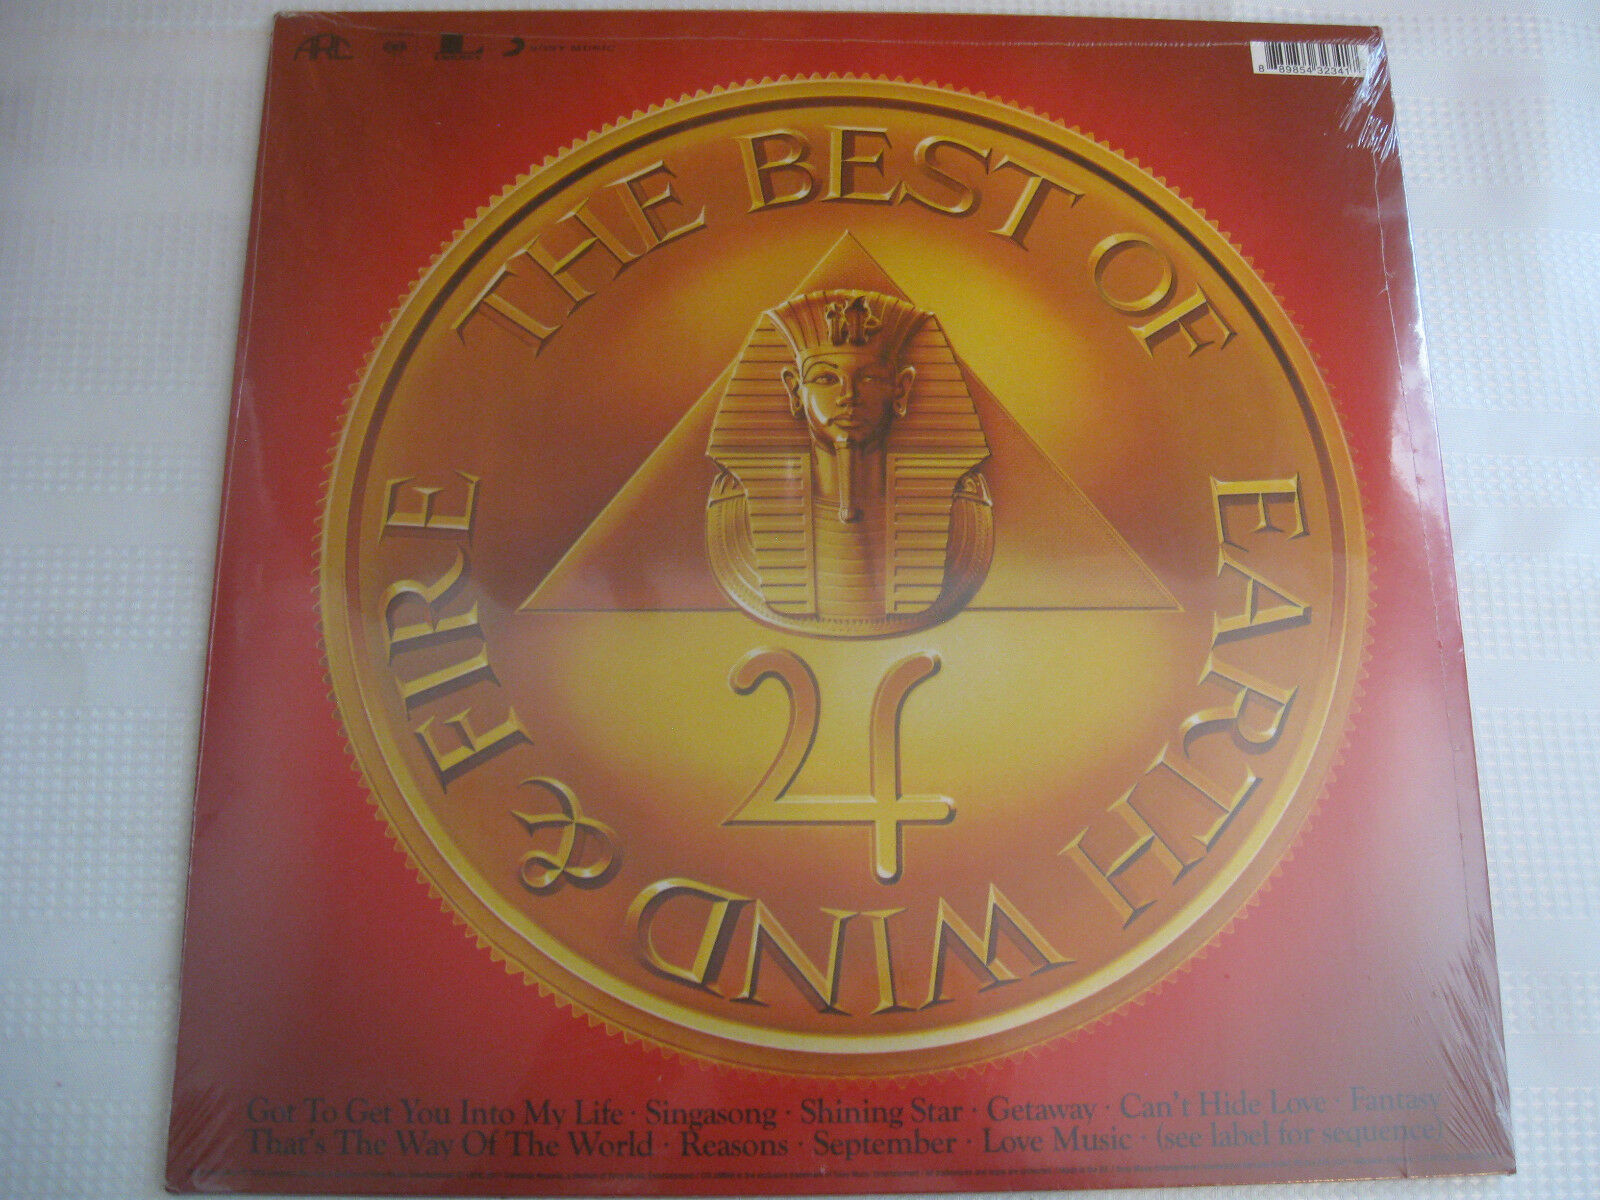 The Best Of Earth Wind & Fire Vol 1 Sony Columbia Stereo Vinyl Record LP SEALED image 2